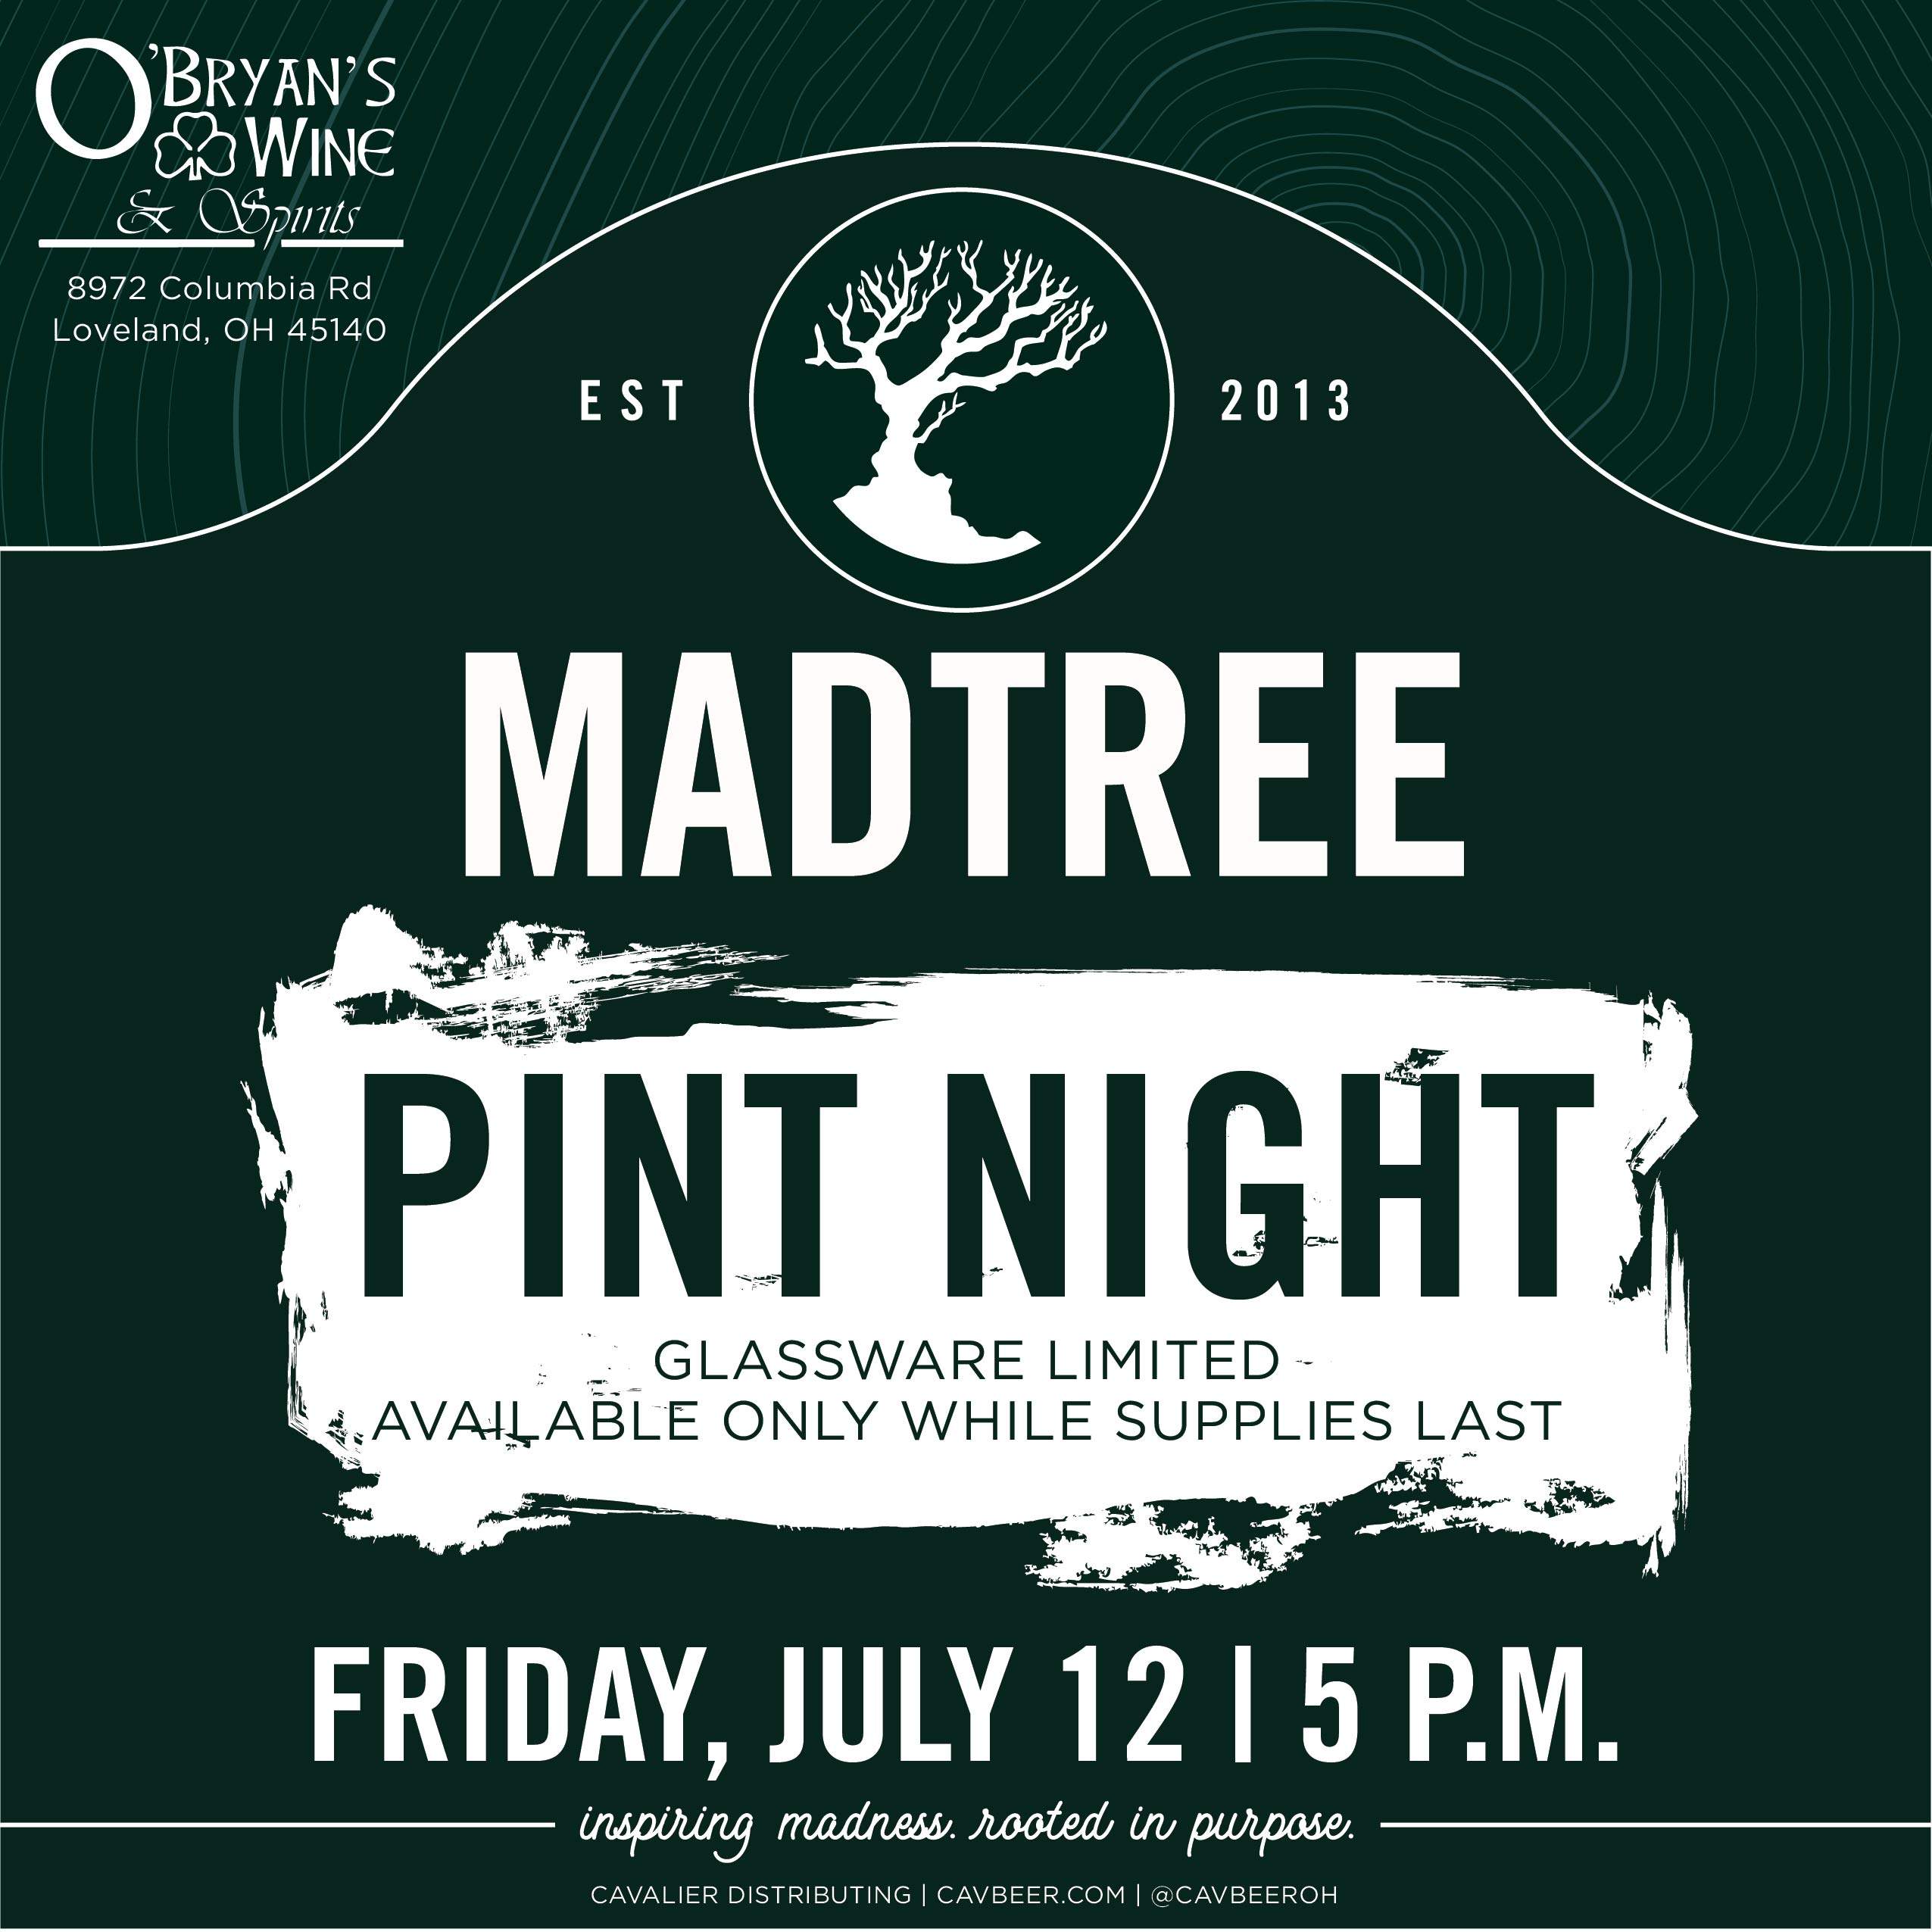 MadTree Pint Night @ O'Bryan's Wine